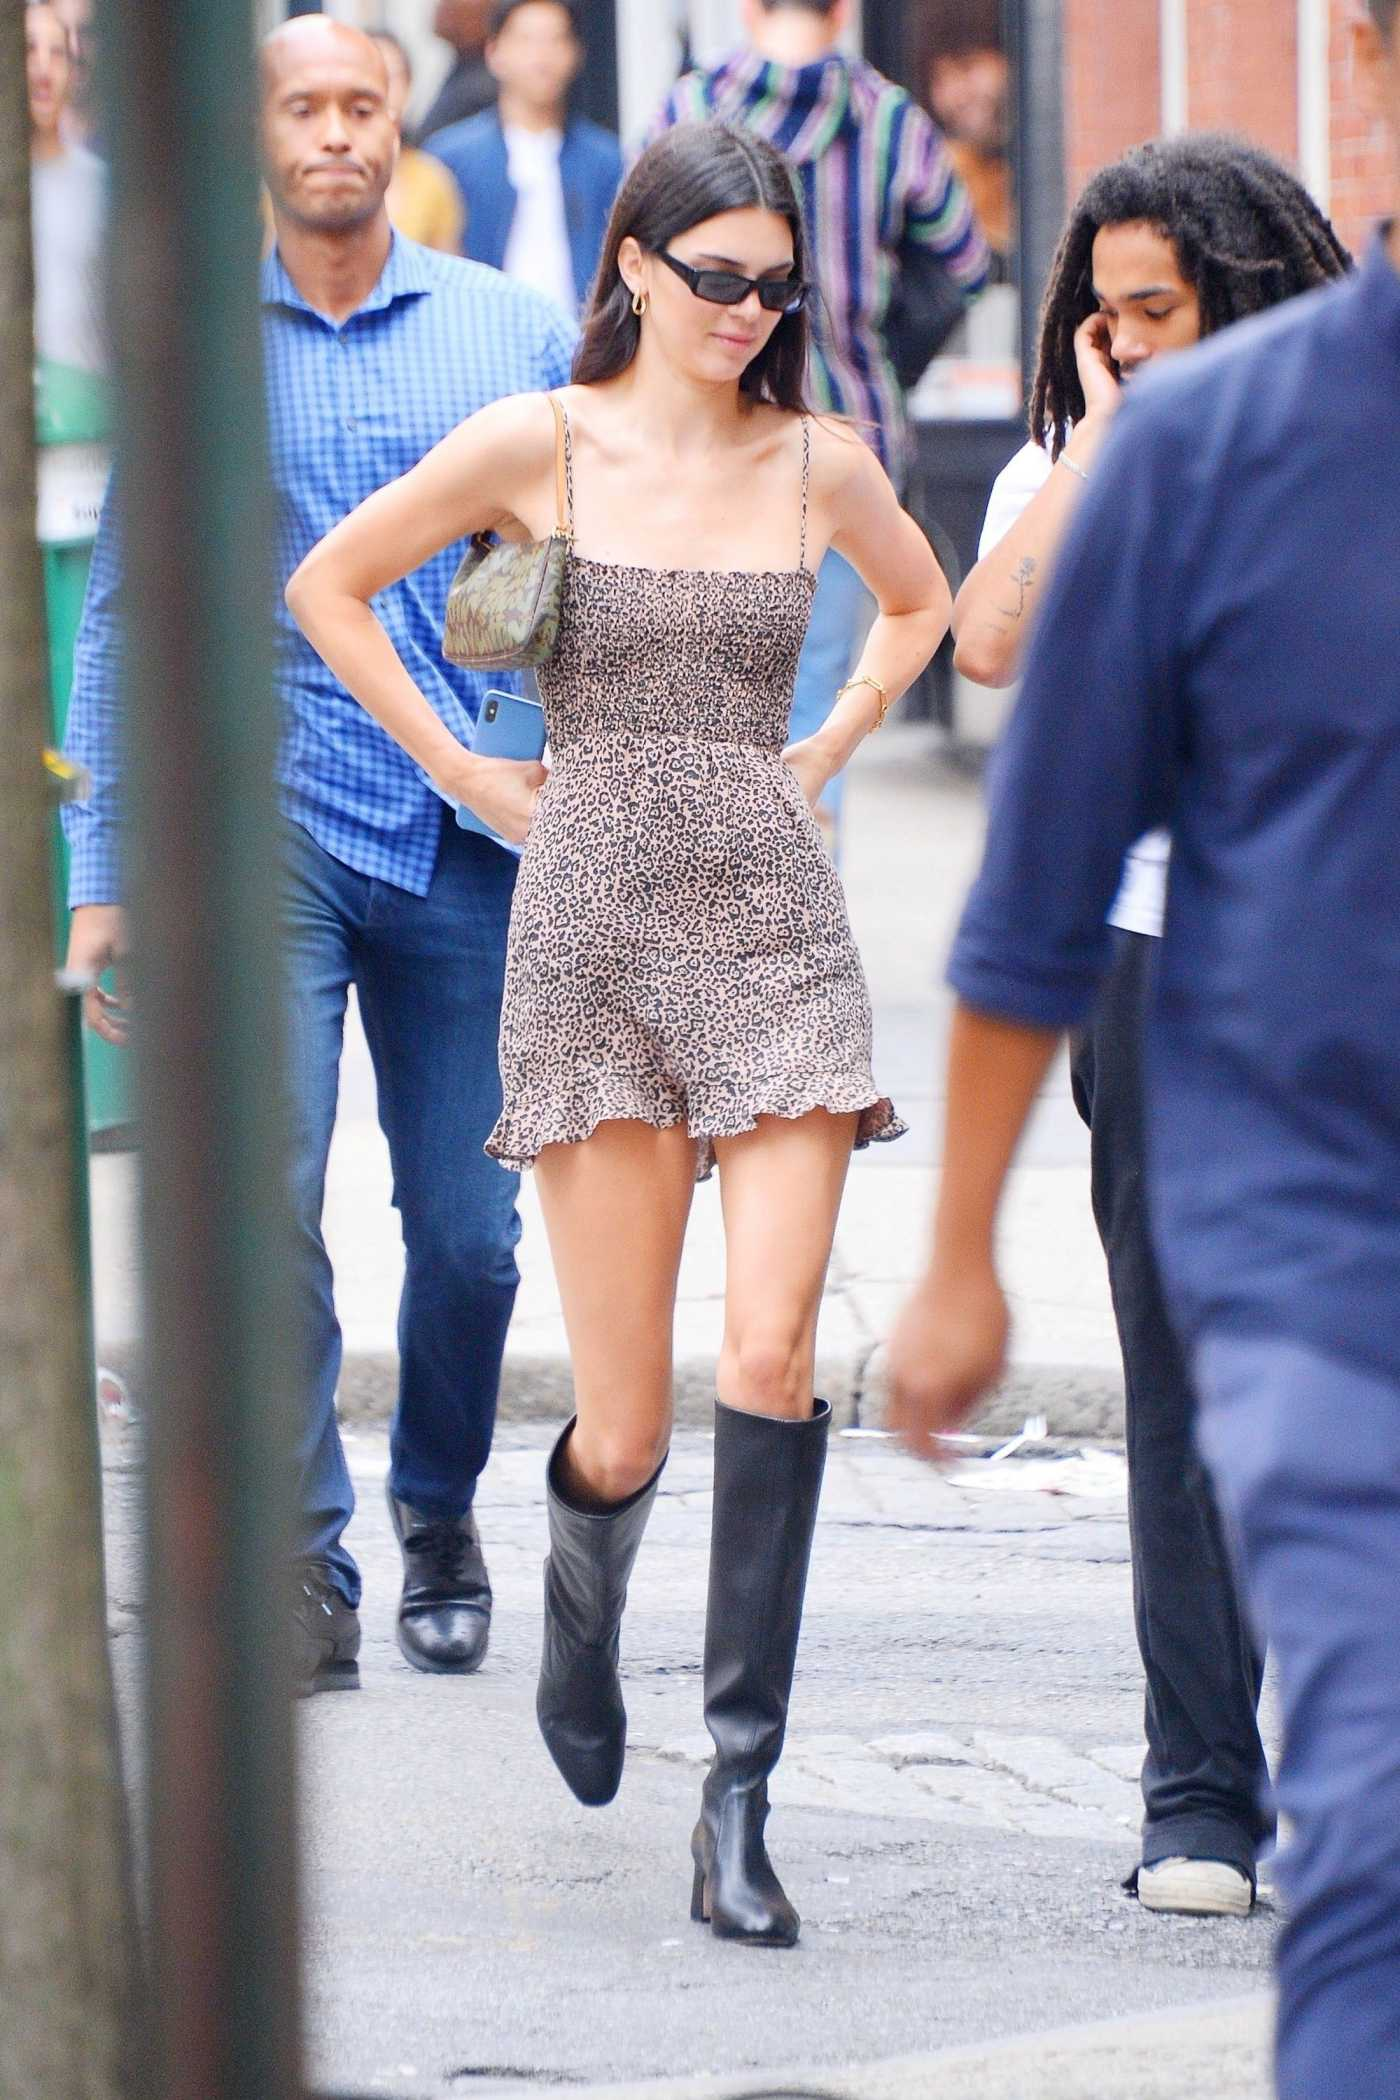 Kendall Jenner in a Beige Leopard Print Dress Was Seen Out with Luka Sabbat in NYC 06/19/2019